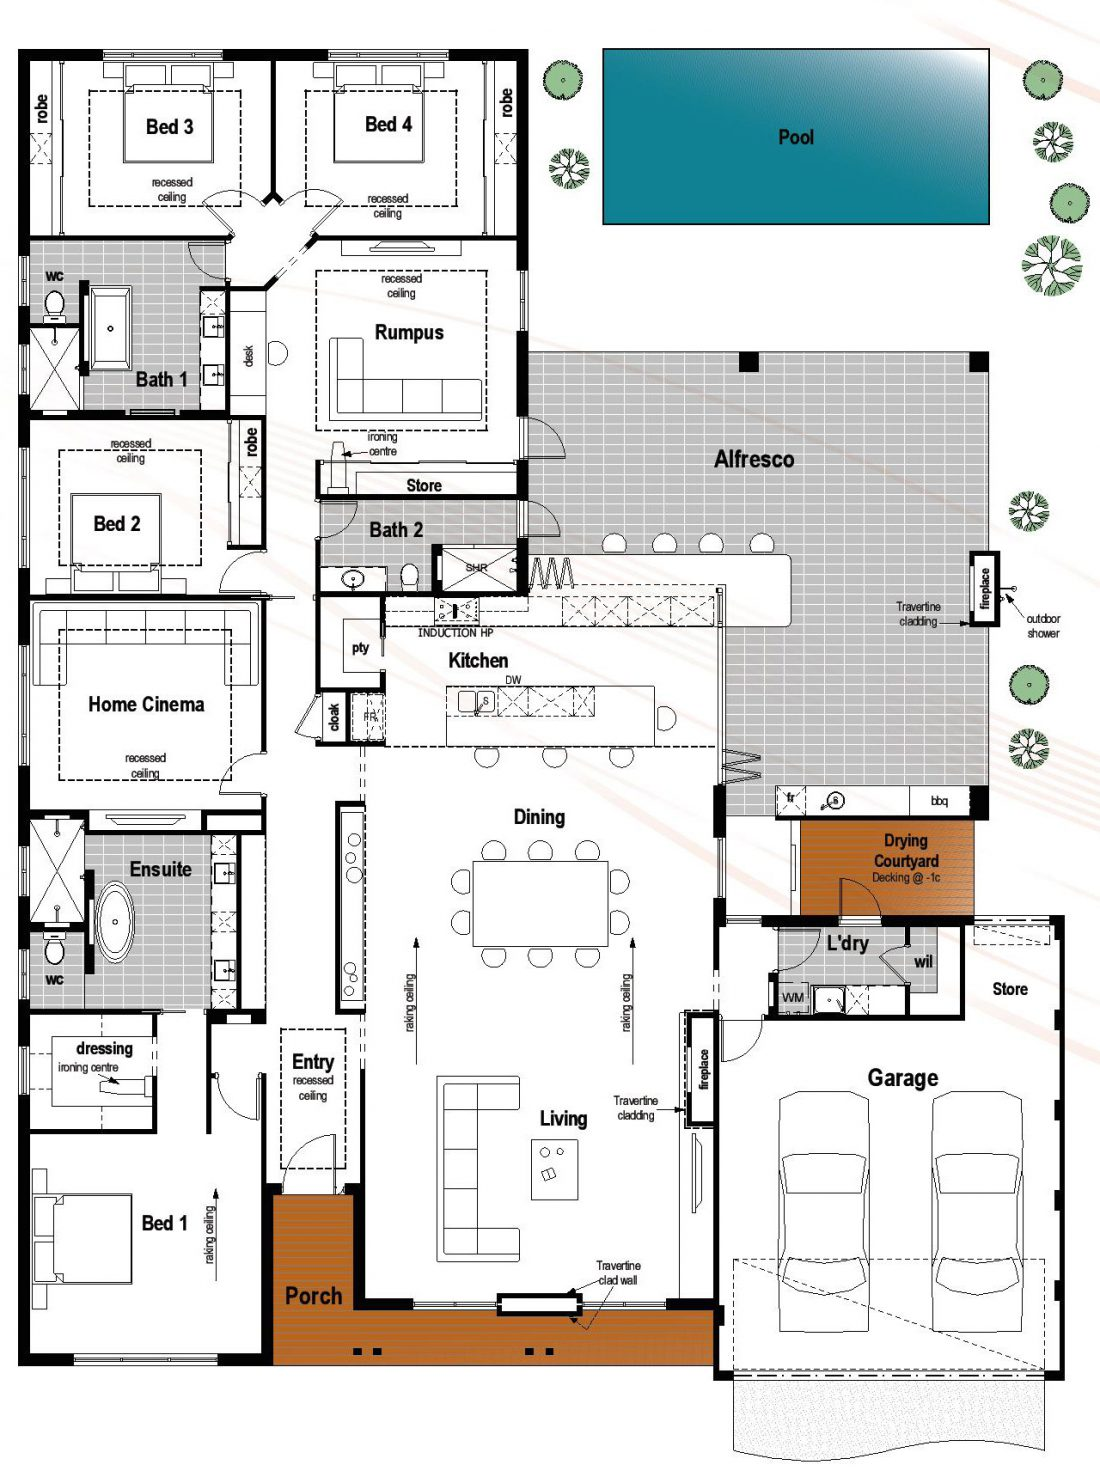 Floor plan friday 4 bedroom 3 bathroom with modern for Building floor plans